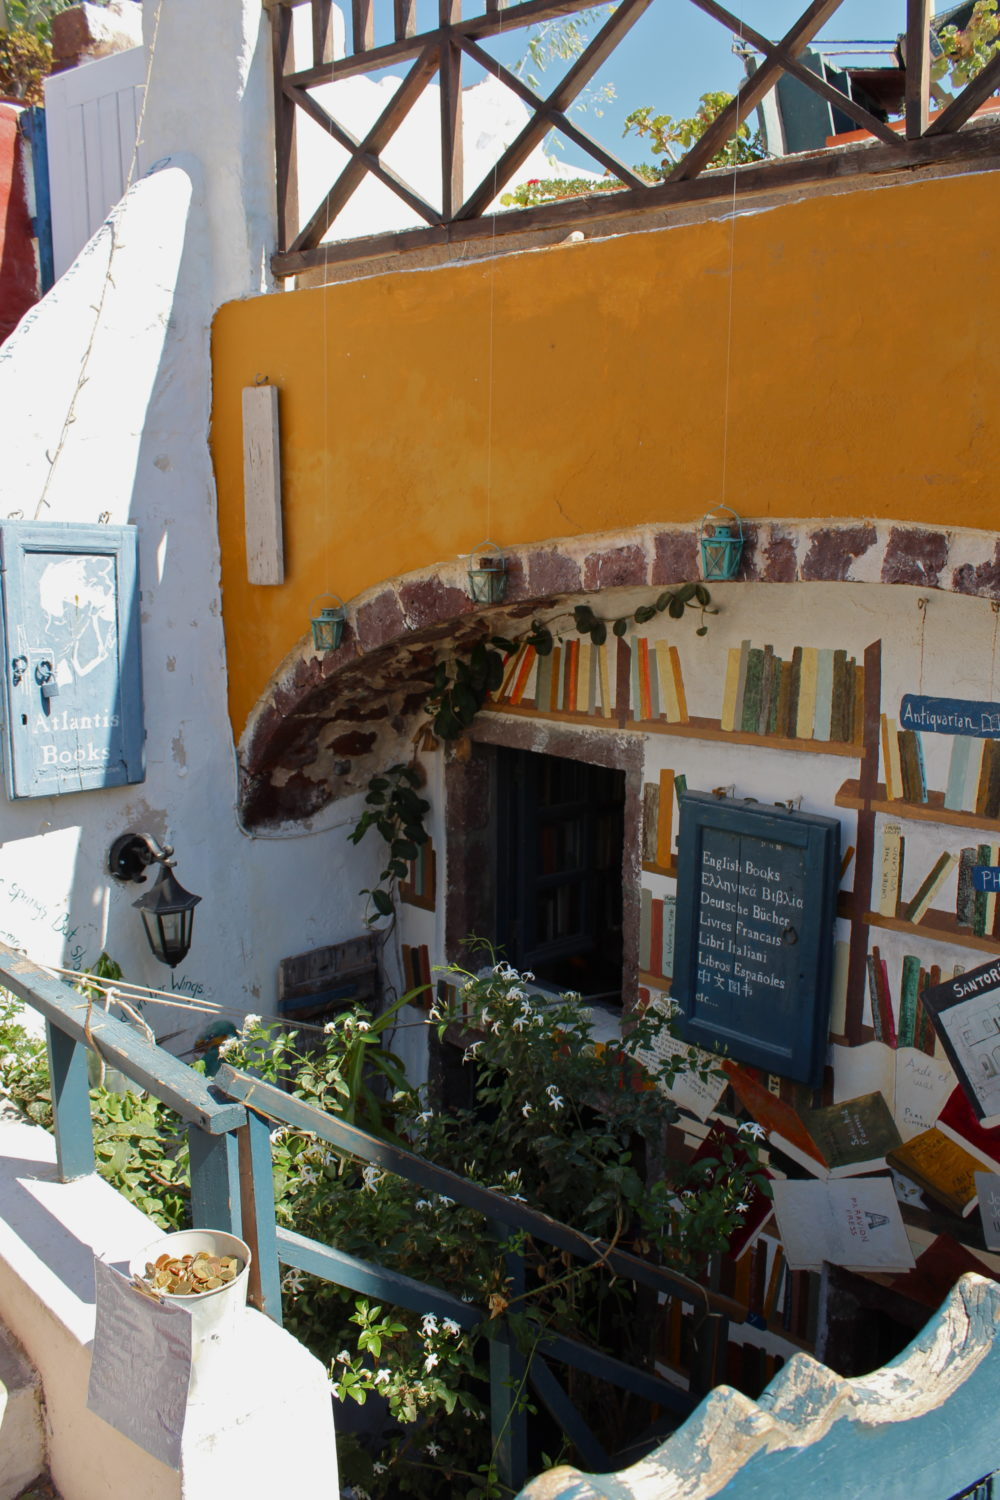 Atlantis Books Santorini